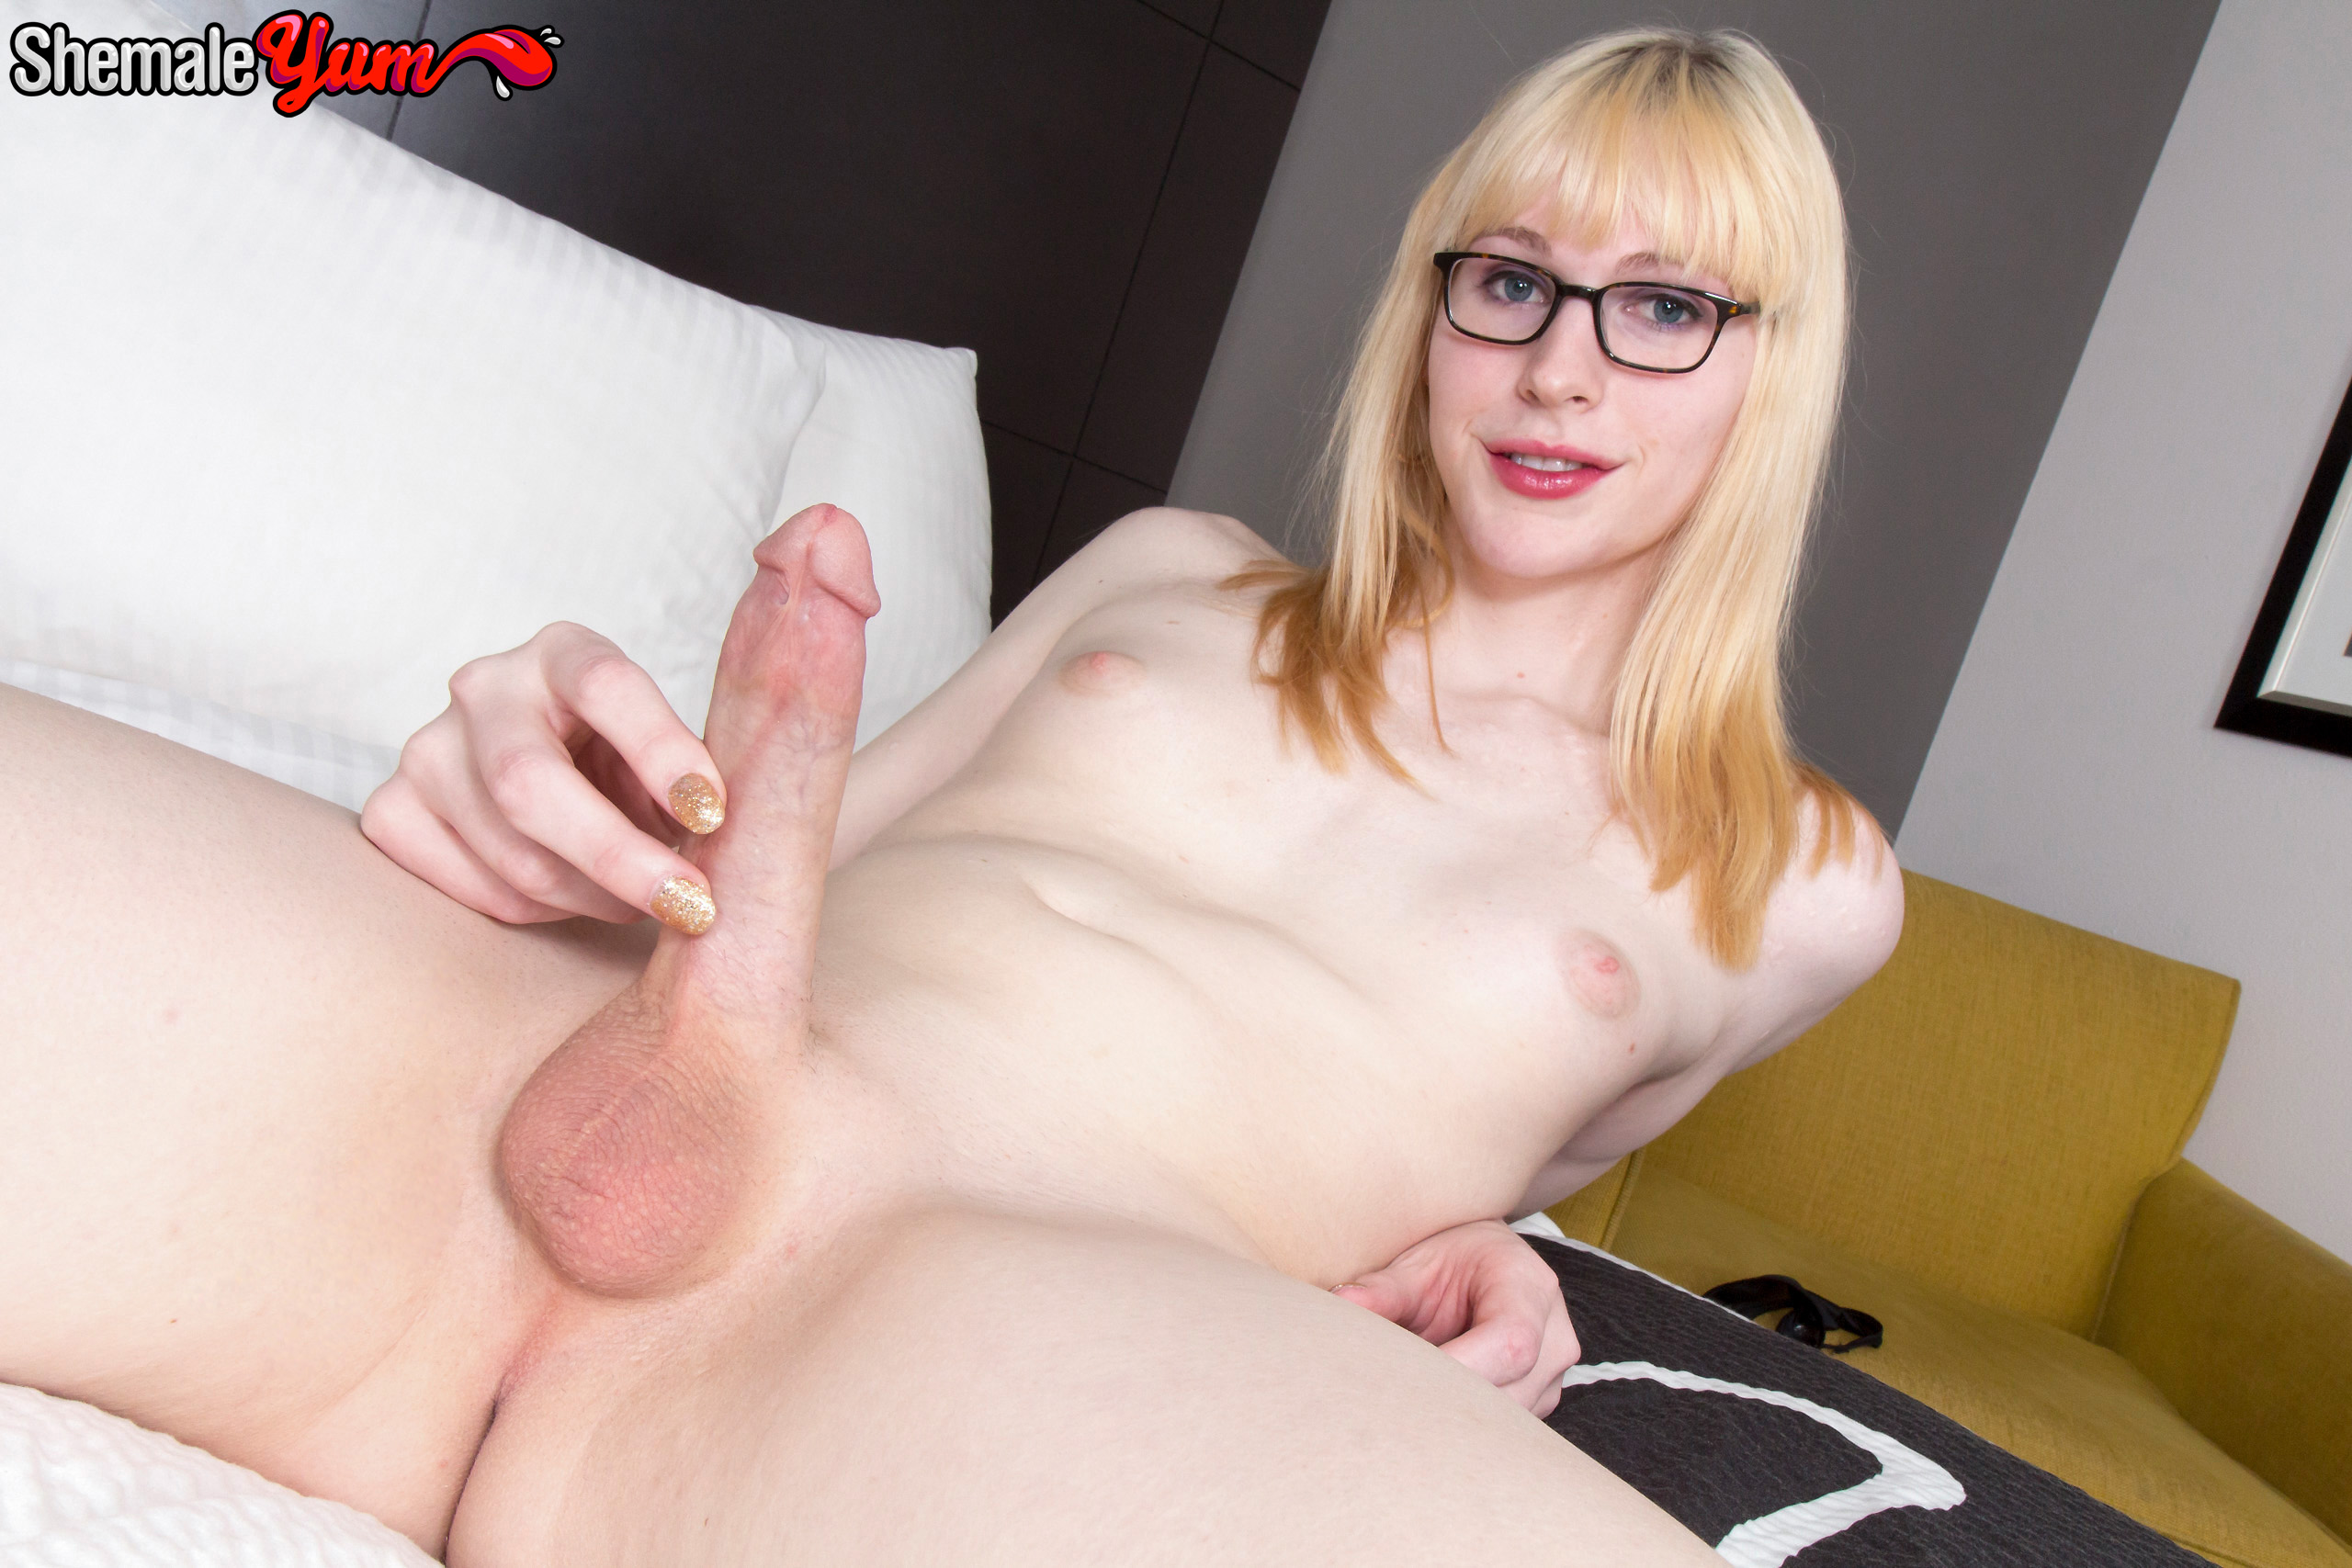 retro porn hot hairy pussy brunette fucks in a campe tmb Aphrodyte, Asslicker, Blonde, Glasses, Happyface, Shemale